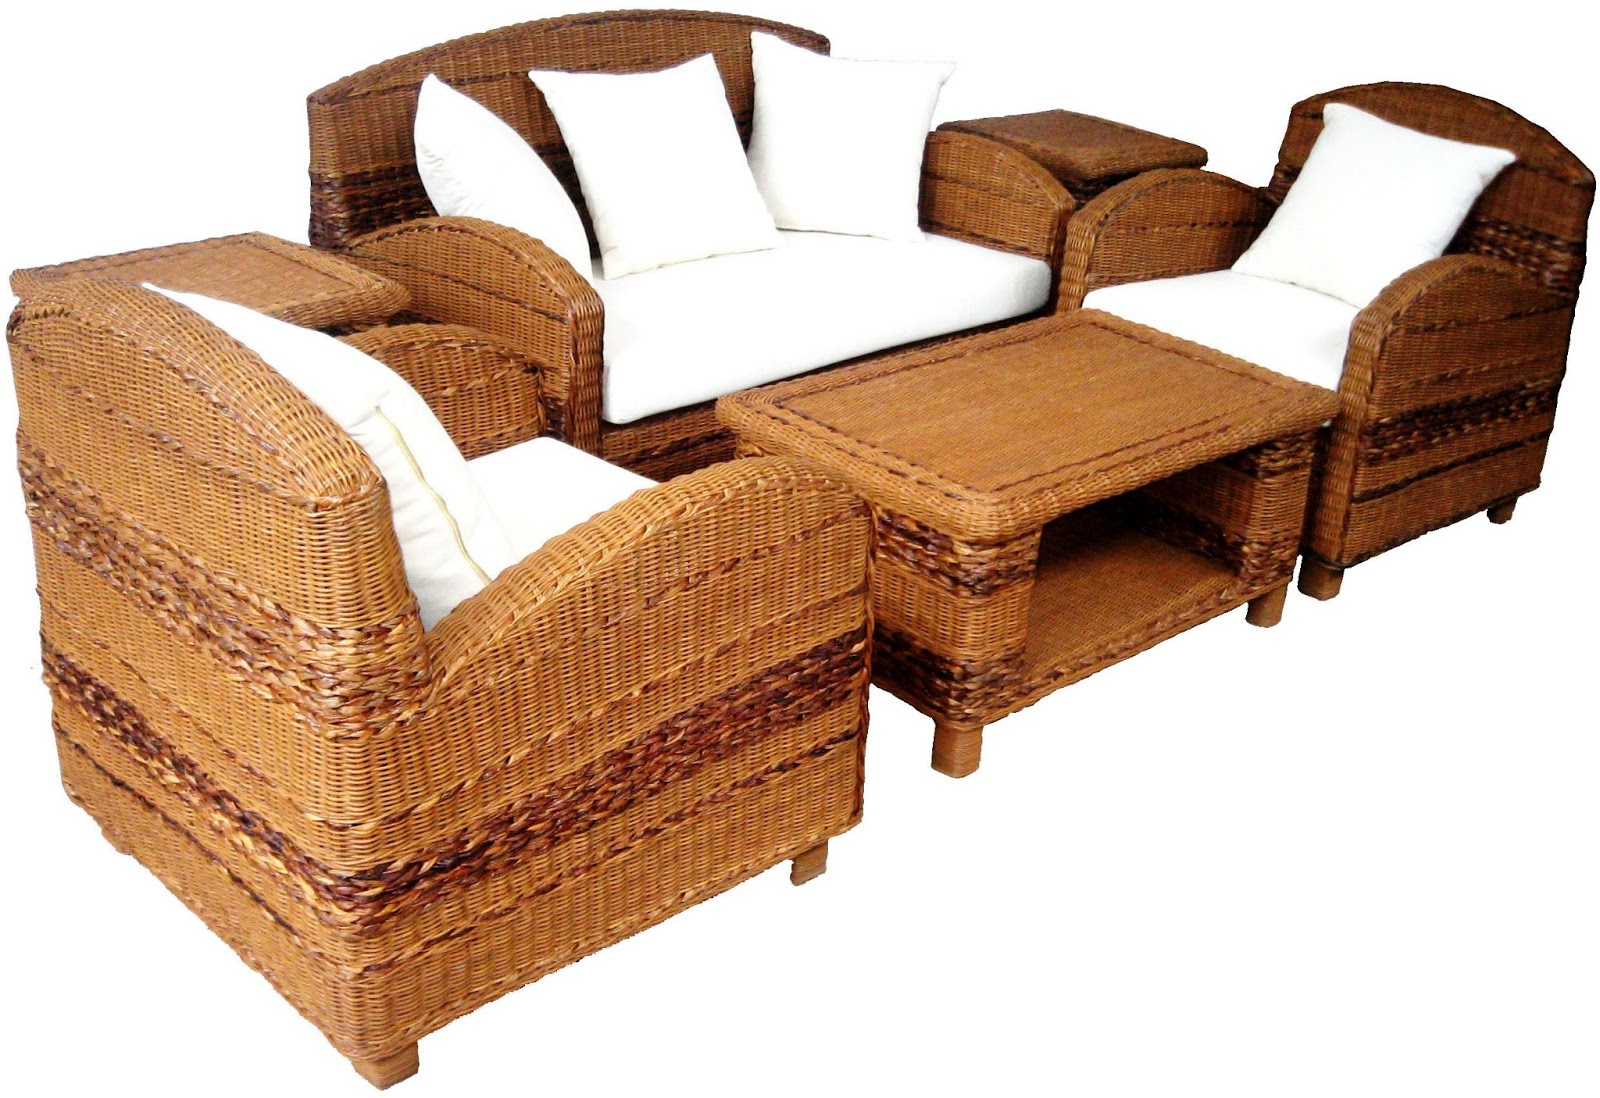 Furniture philippines Our home furniture prices philippines